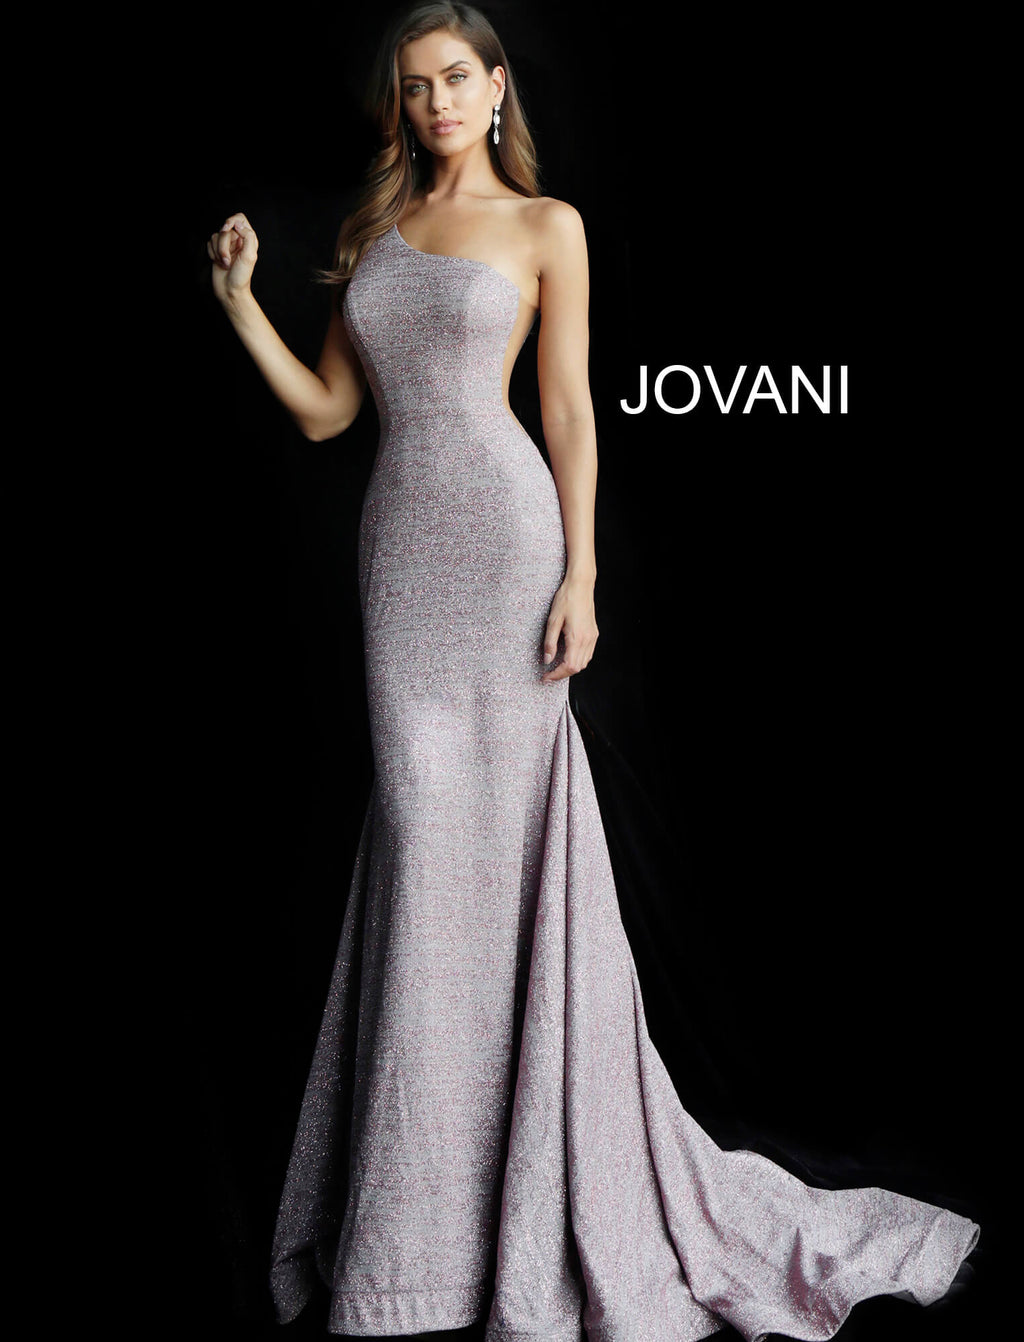 JOVANI 67650 One Shoulder Glitter Evening Dress - CYC Boutique